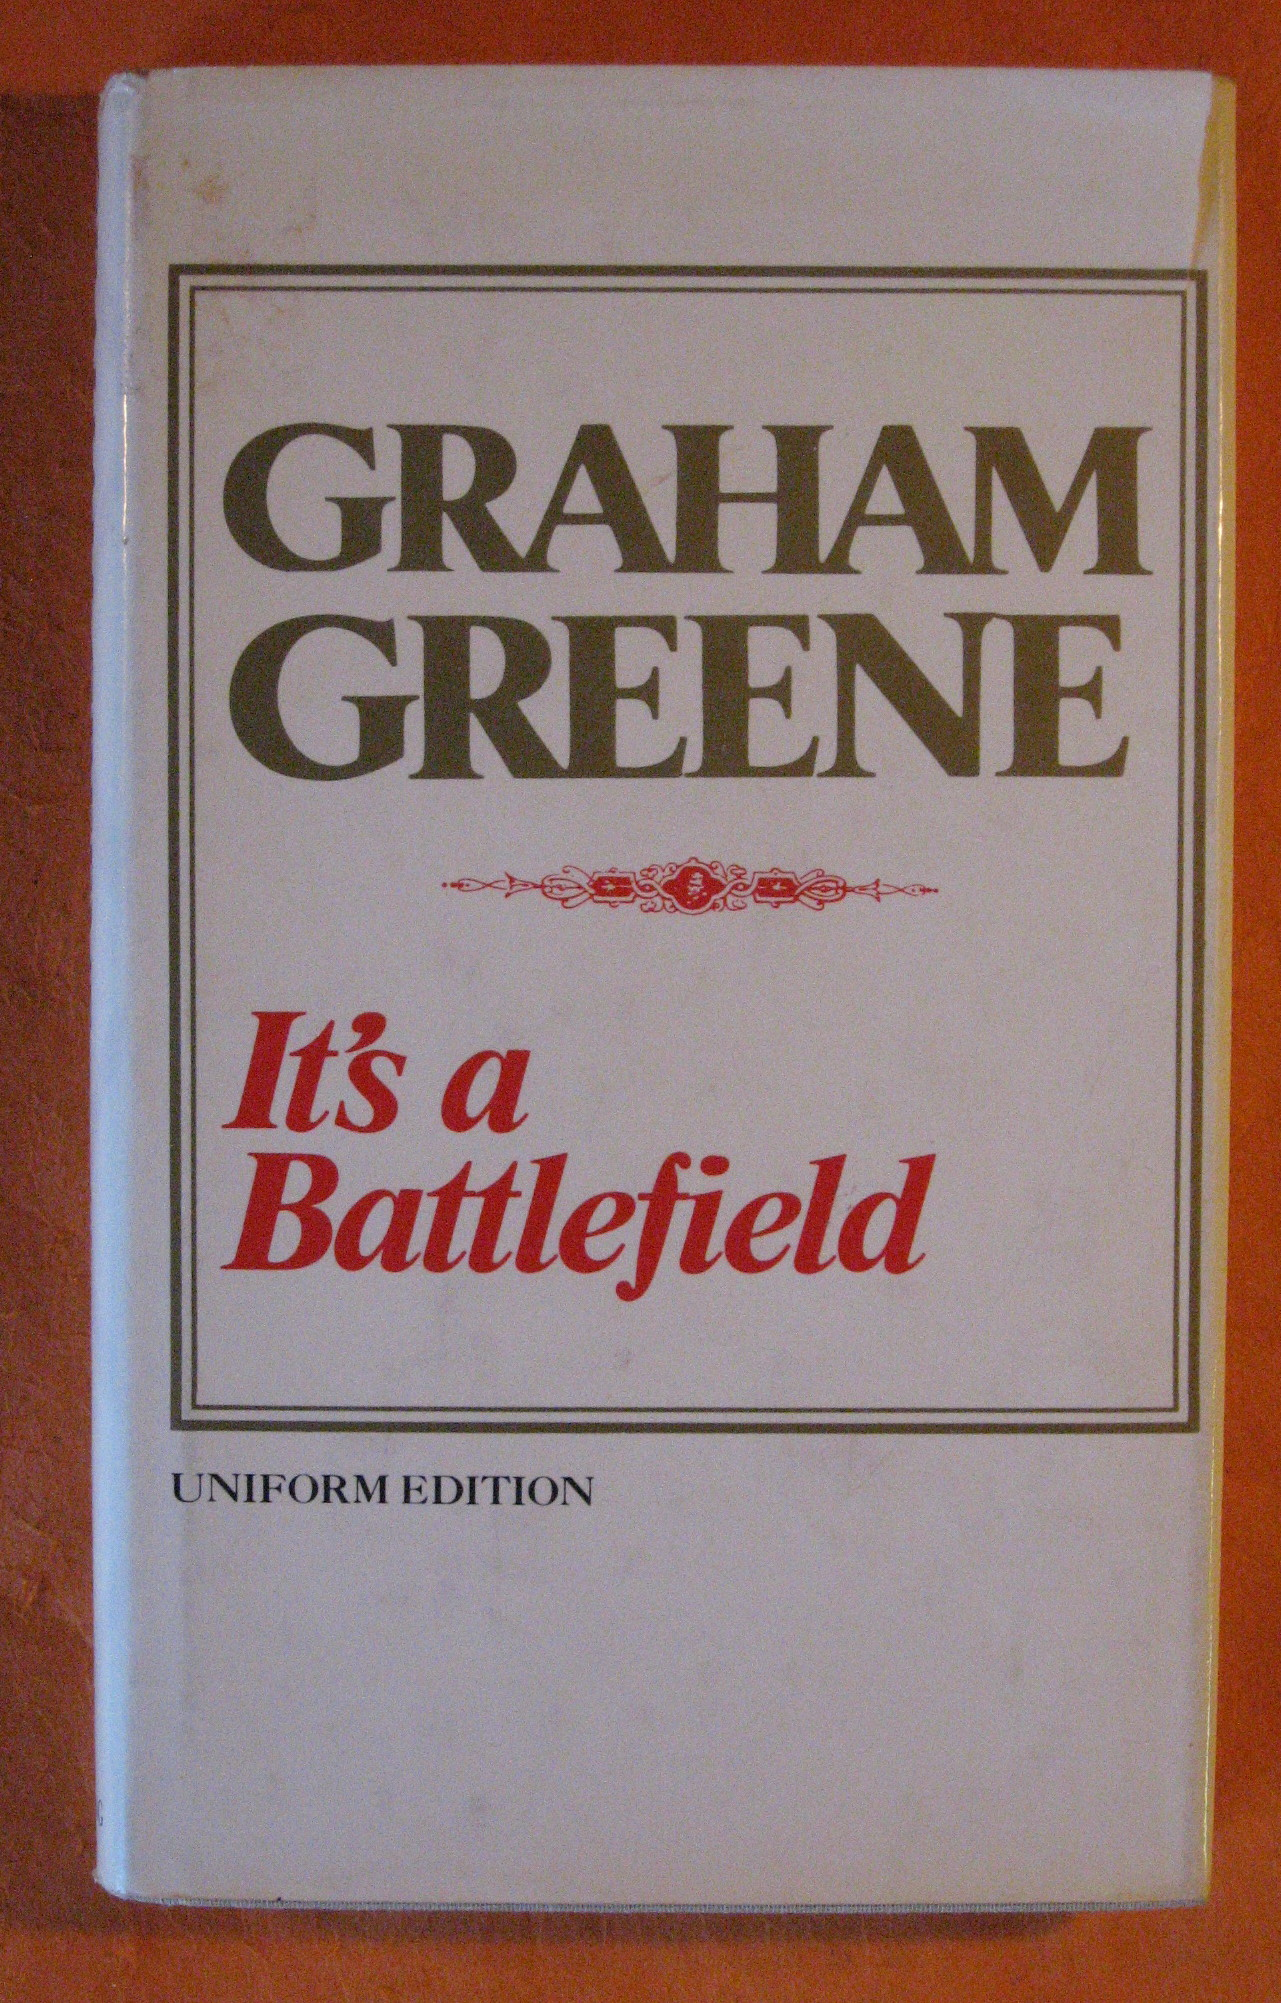 It's a Battlefield, Greene, Graham